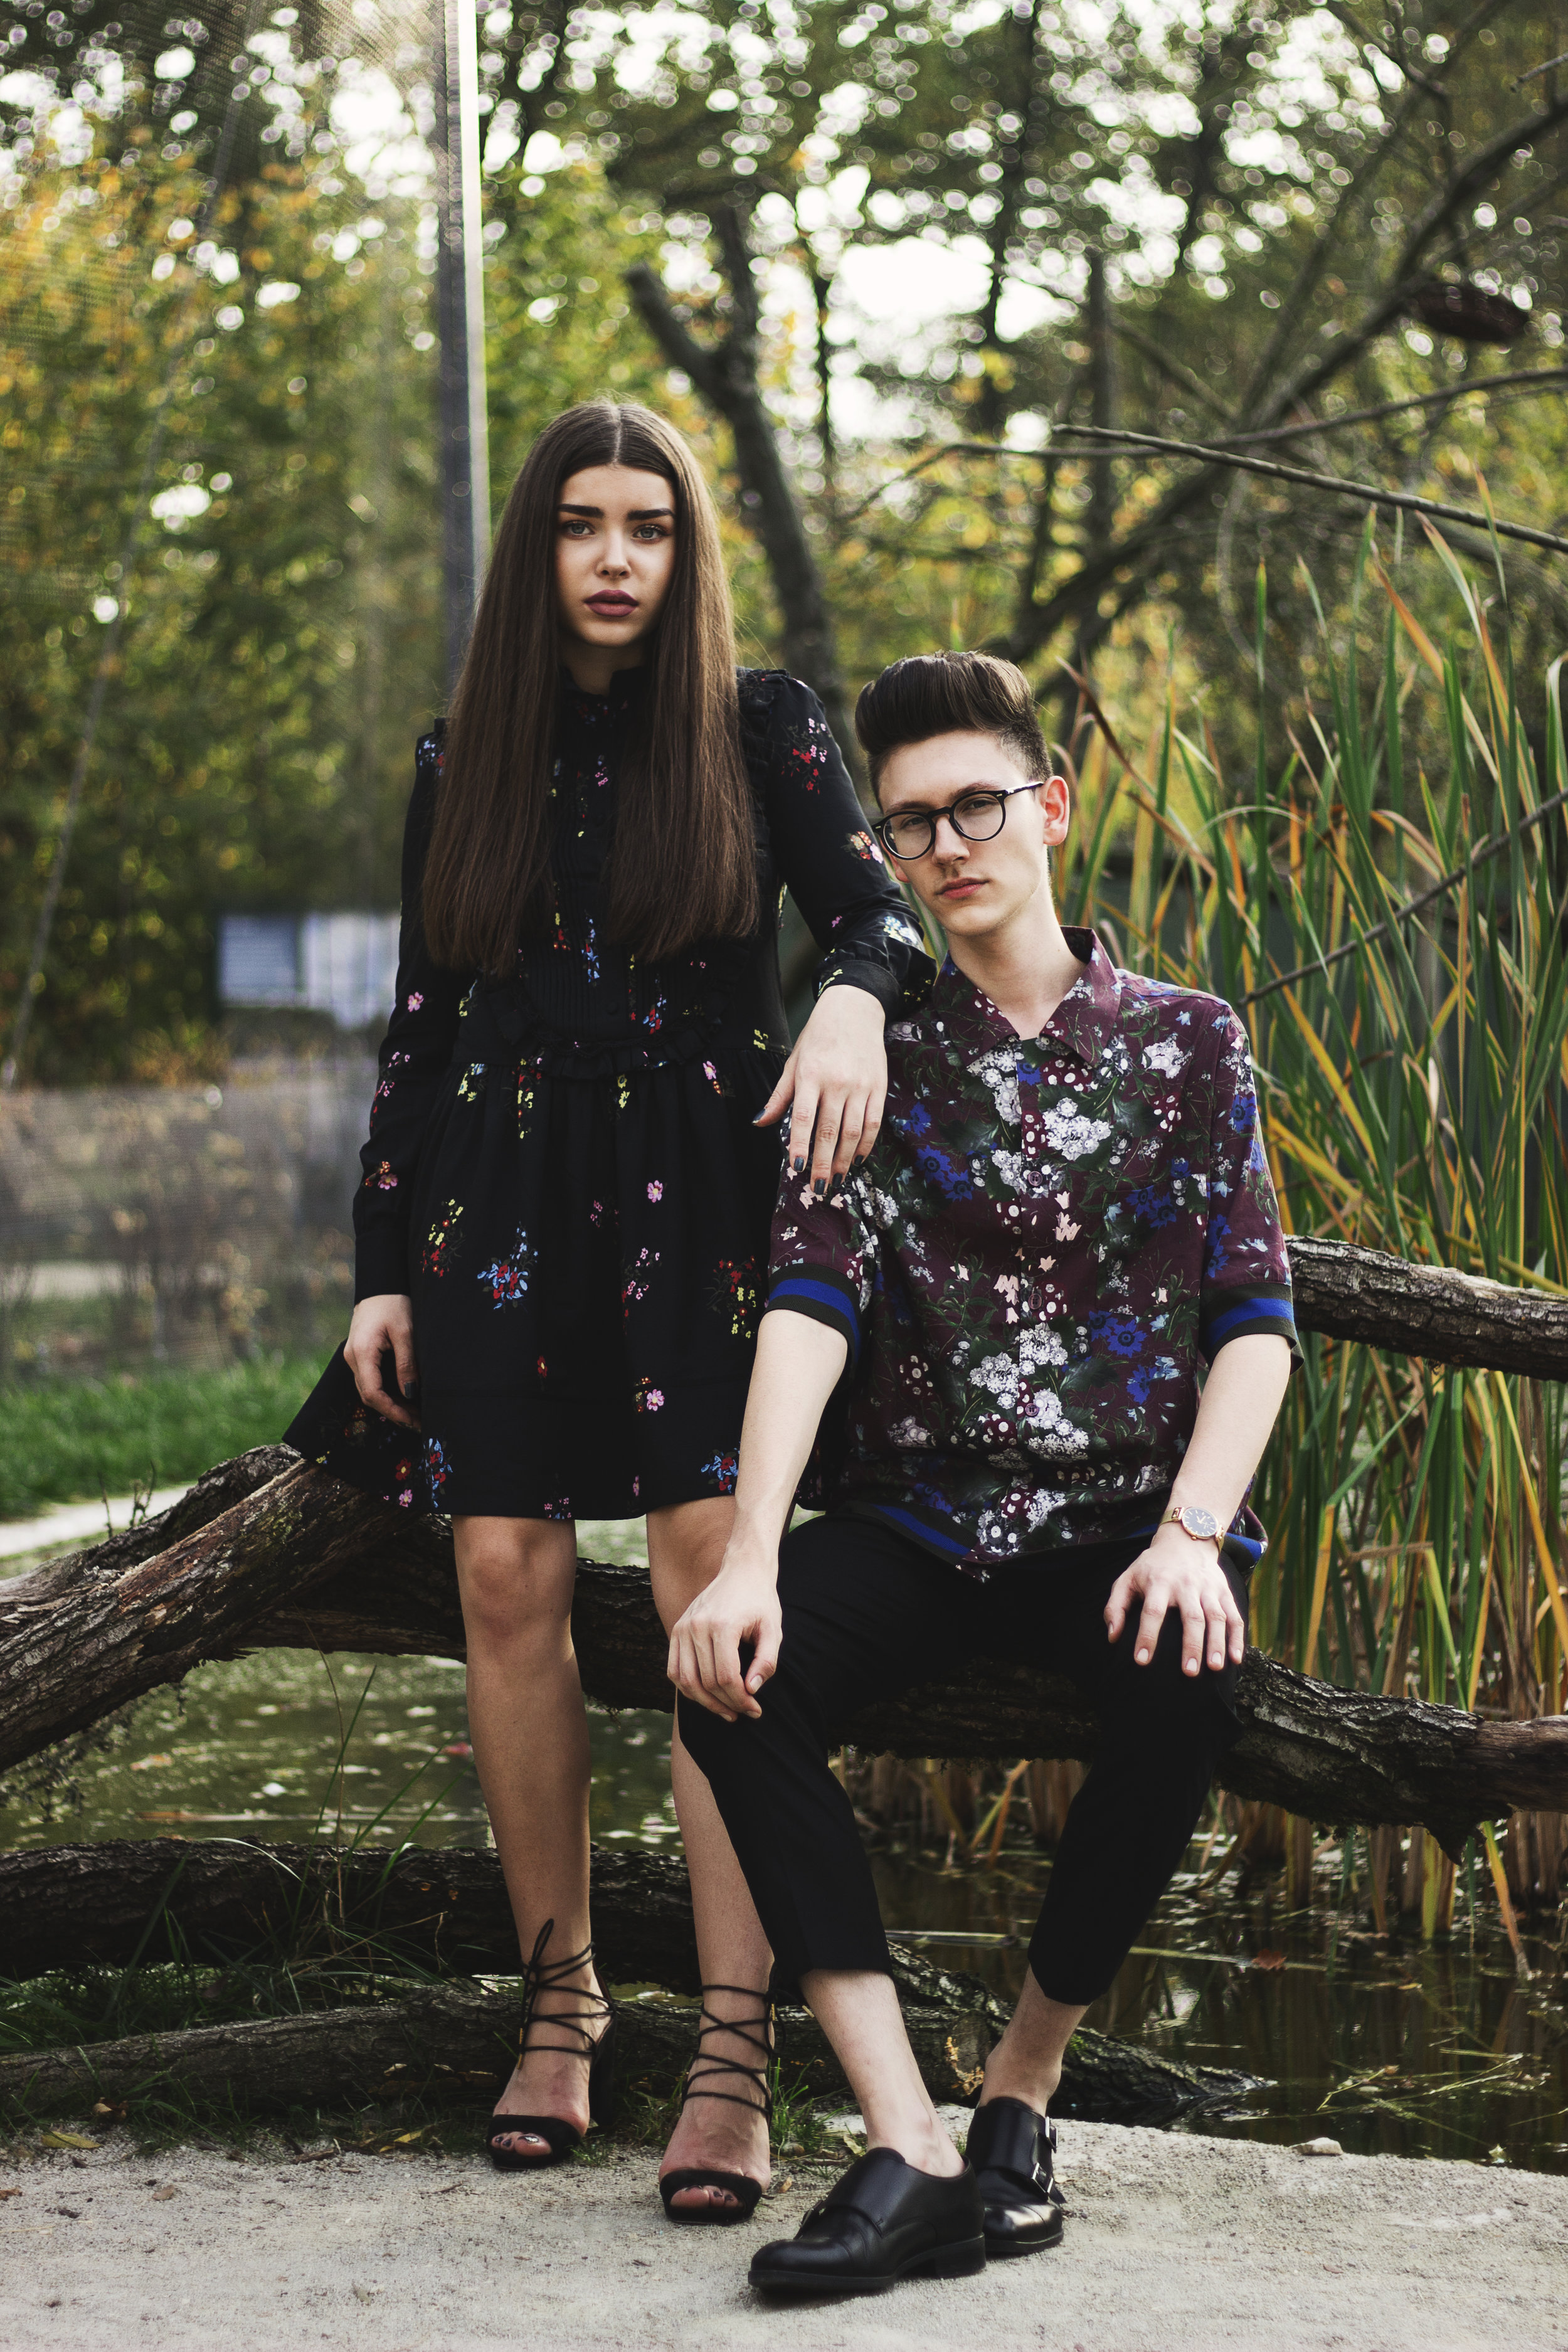 erdem-x-hm-luka-lajic-expensive-reality-croatia-ootd-fashion-editorial-collaboration (9).jpg